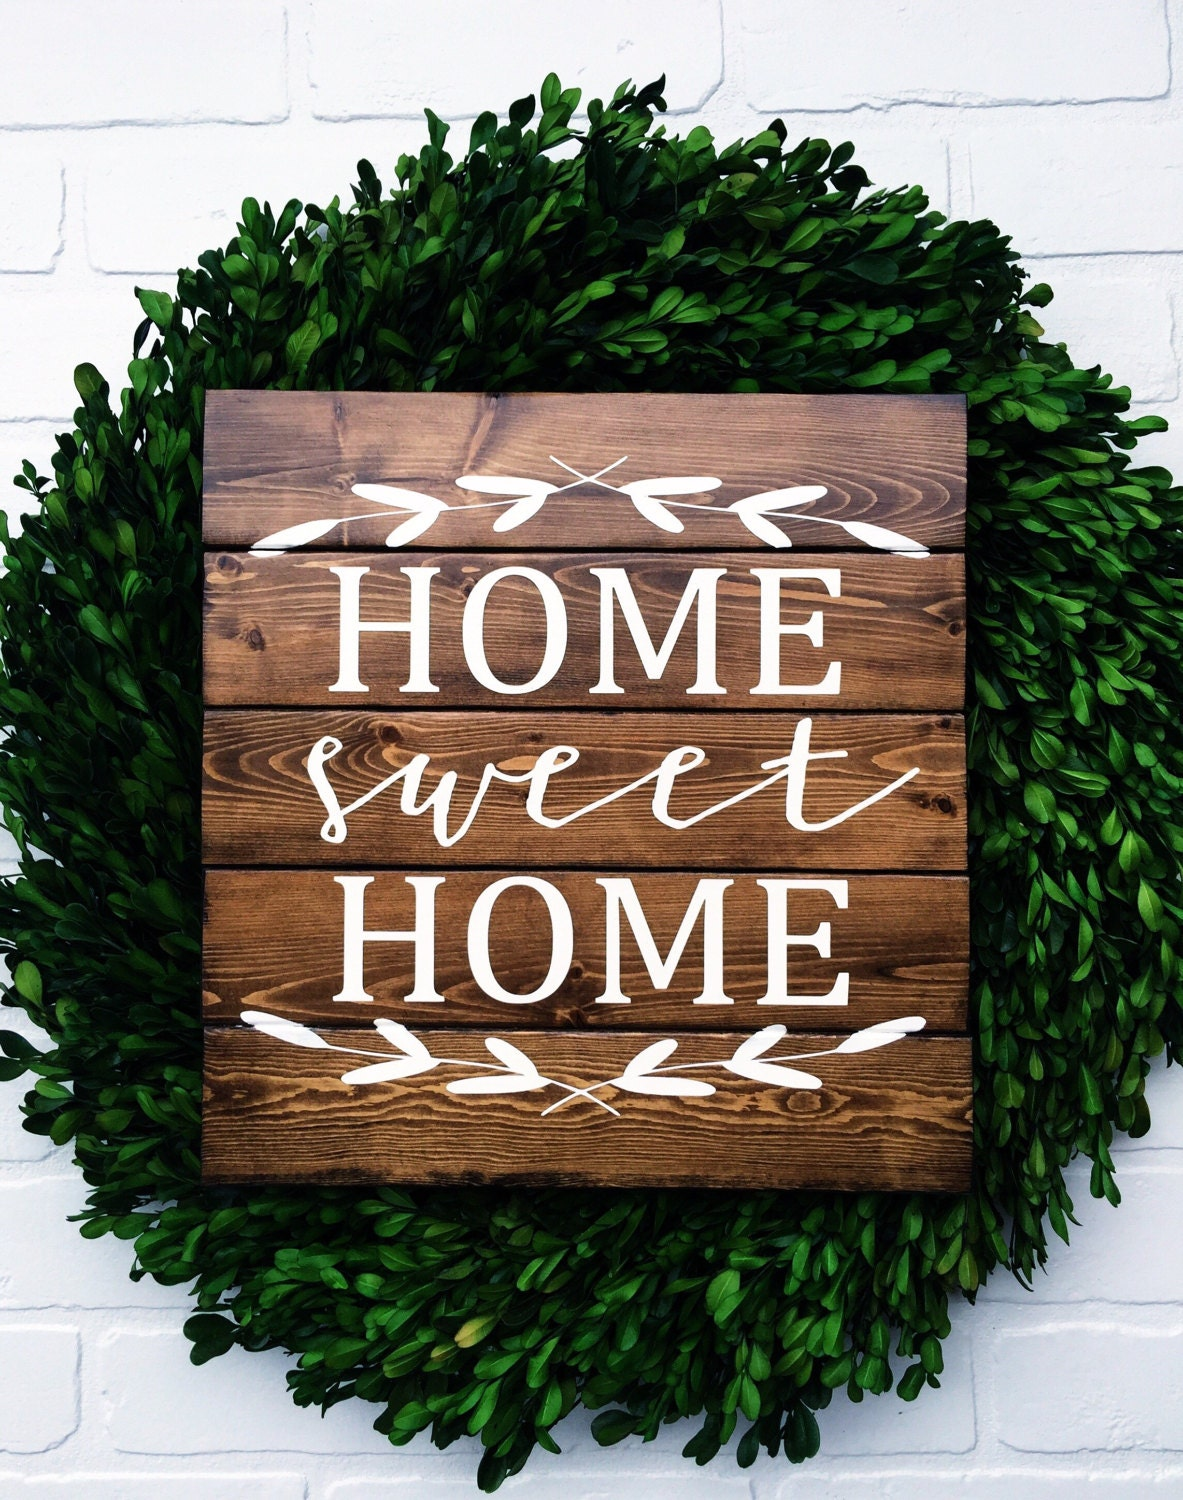 Home Sweet Home 12x12 Personalized Wood Sign Home Sweet